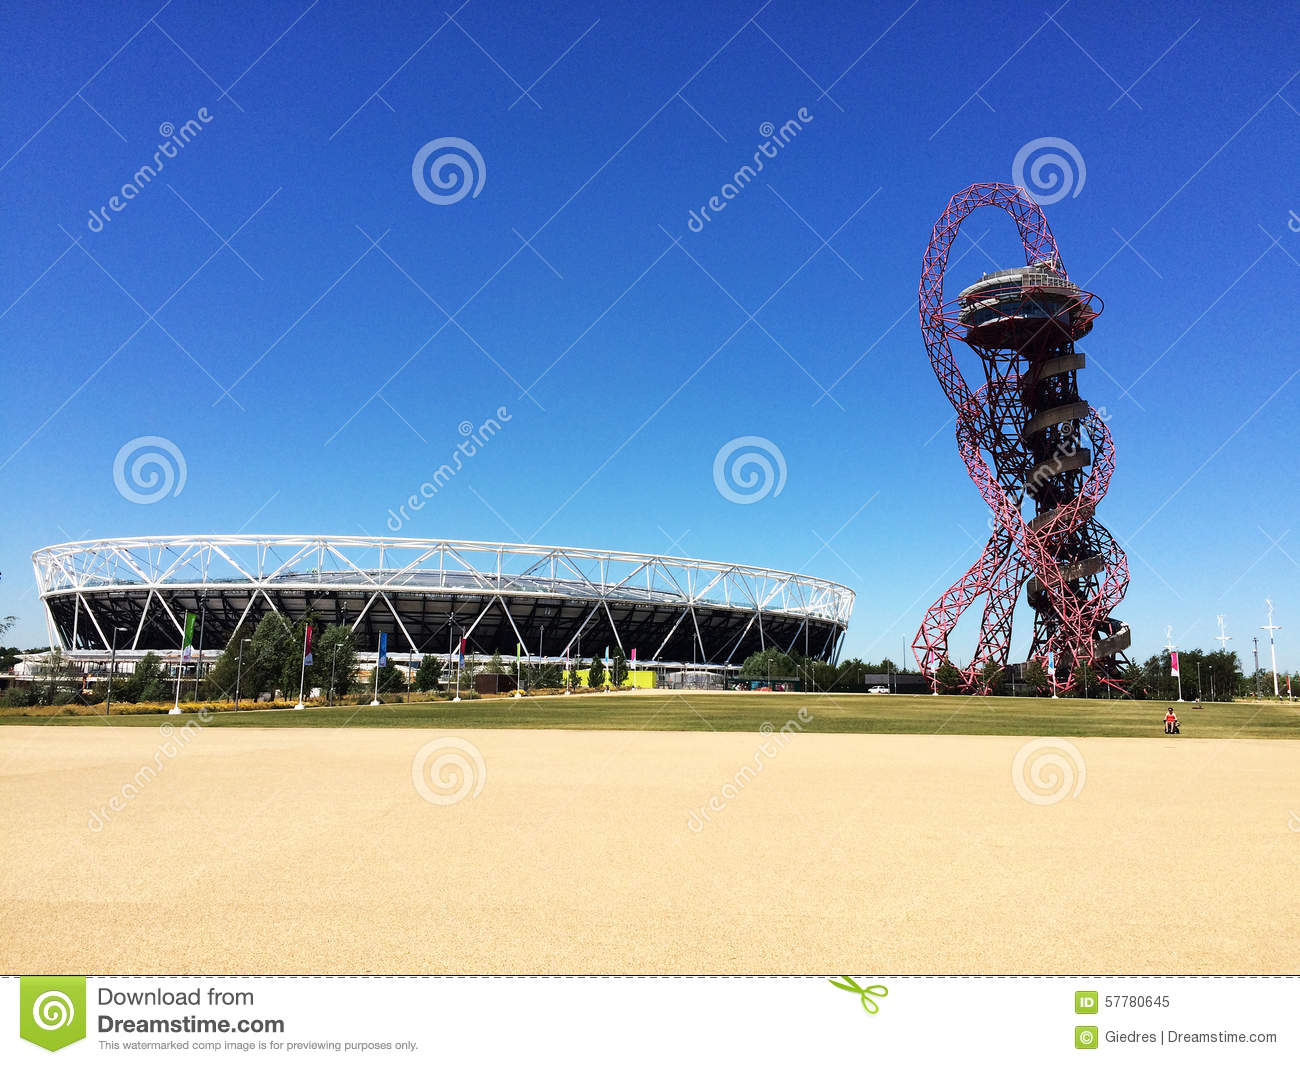 Arcelormittal observation tower london olympic stadium editorial arcelormittal observation tower london olympic stadium editorial stock photo buycottarizona